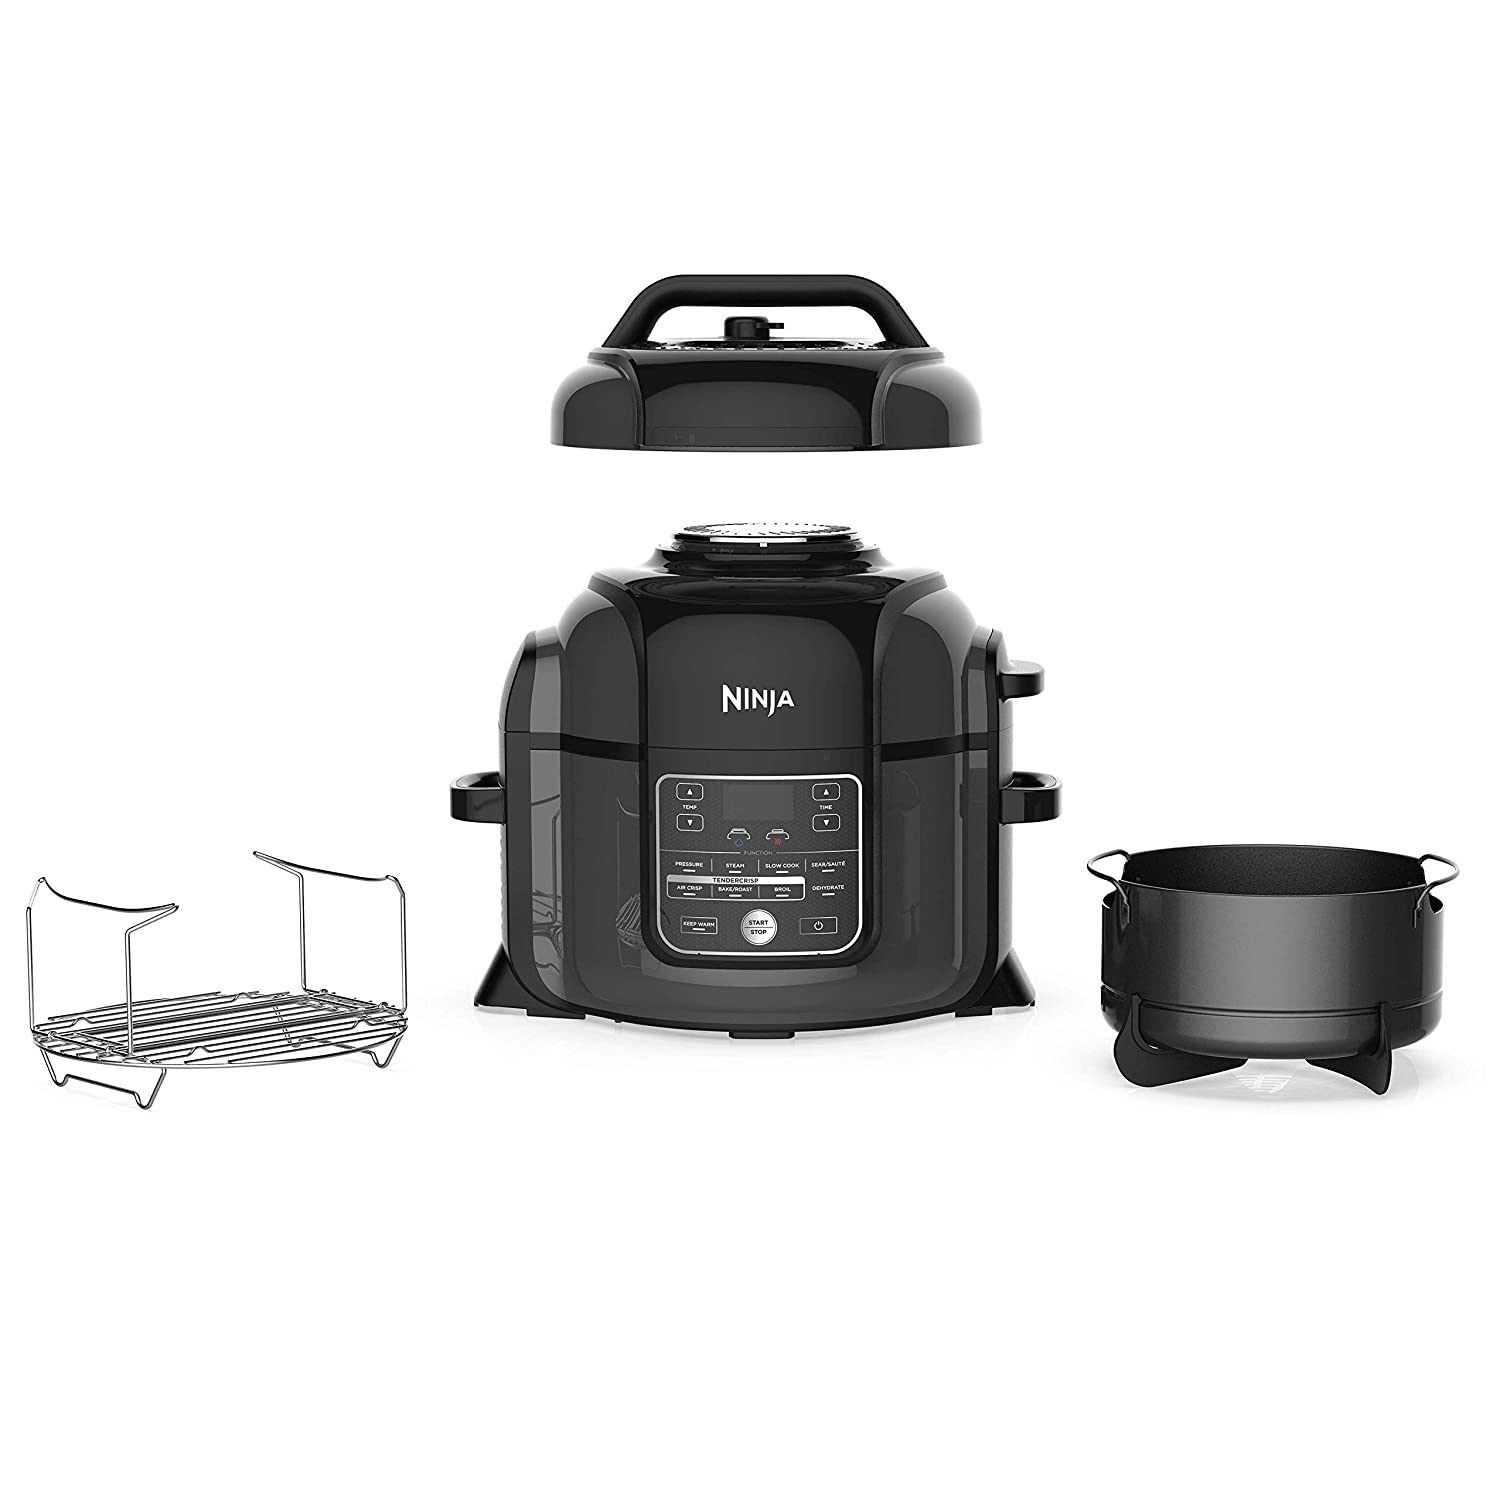 Ninja OP302 Pressure Cooker%2C Steamer %26 Air Fryer w%2FTenderCrisp Technology Pressure %26 Crisping Lid 6%2E5 quart w%2Fdehydrate Black%2FGray %28Renewed%29